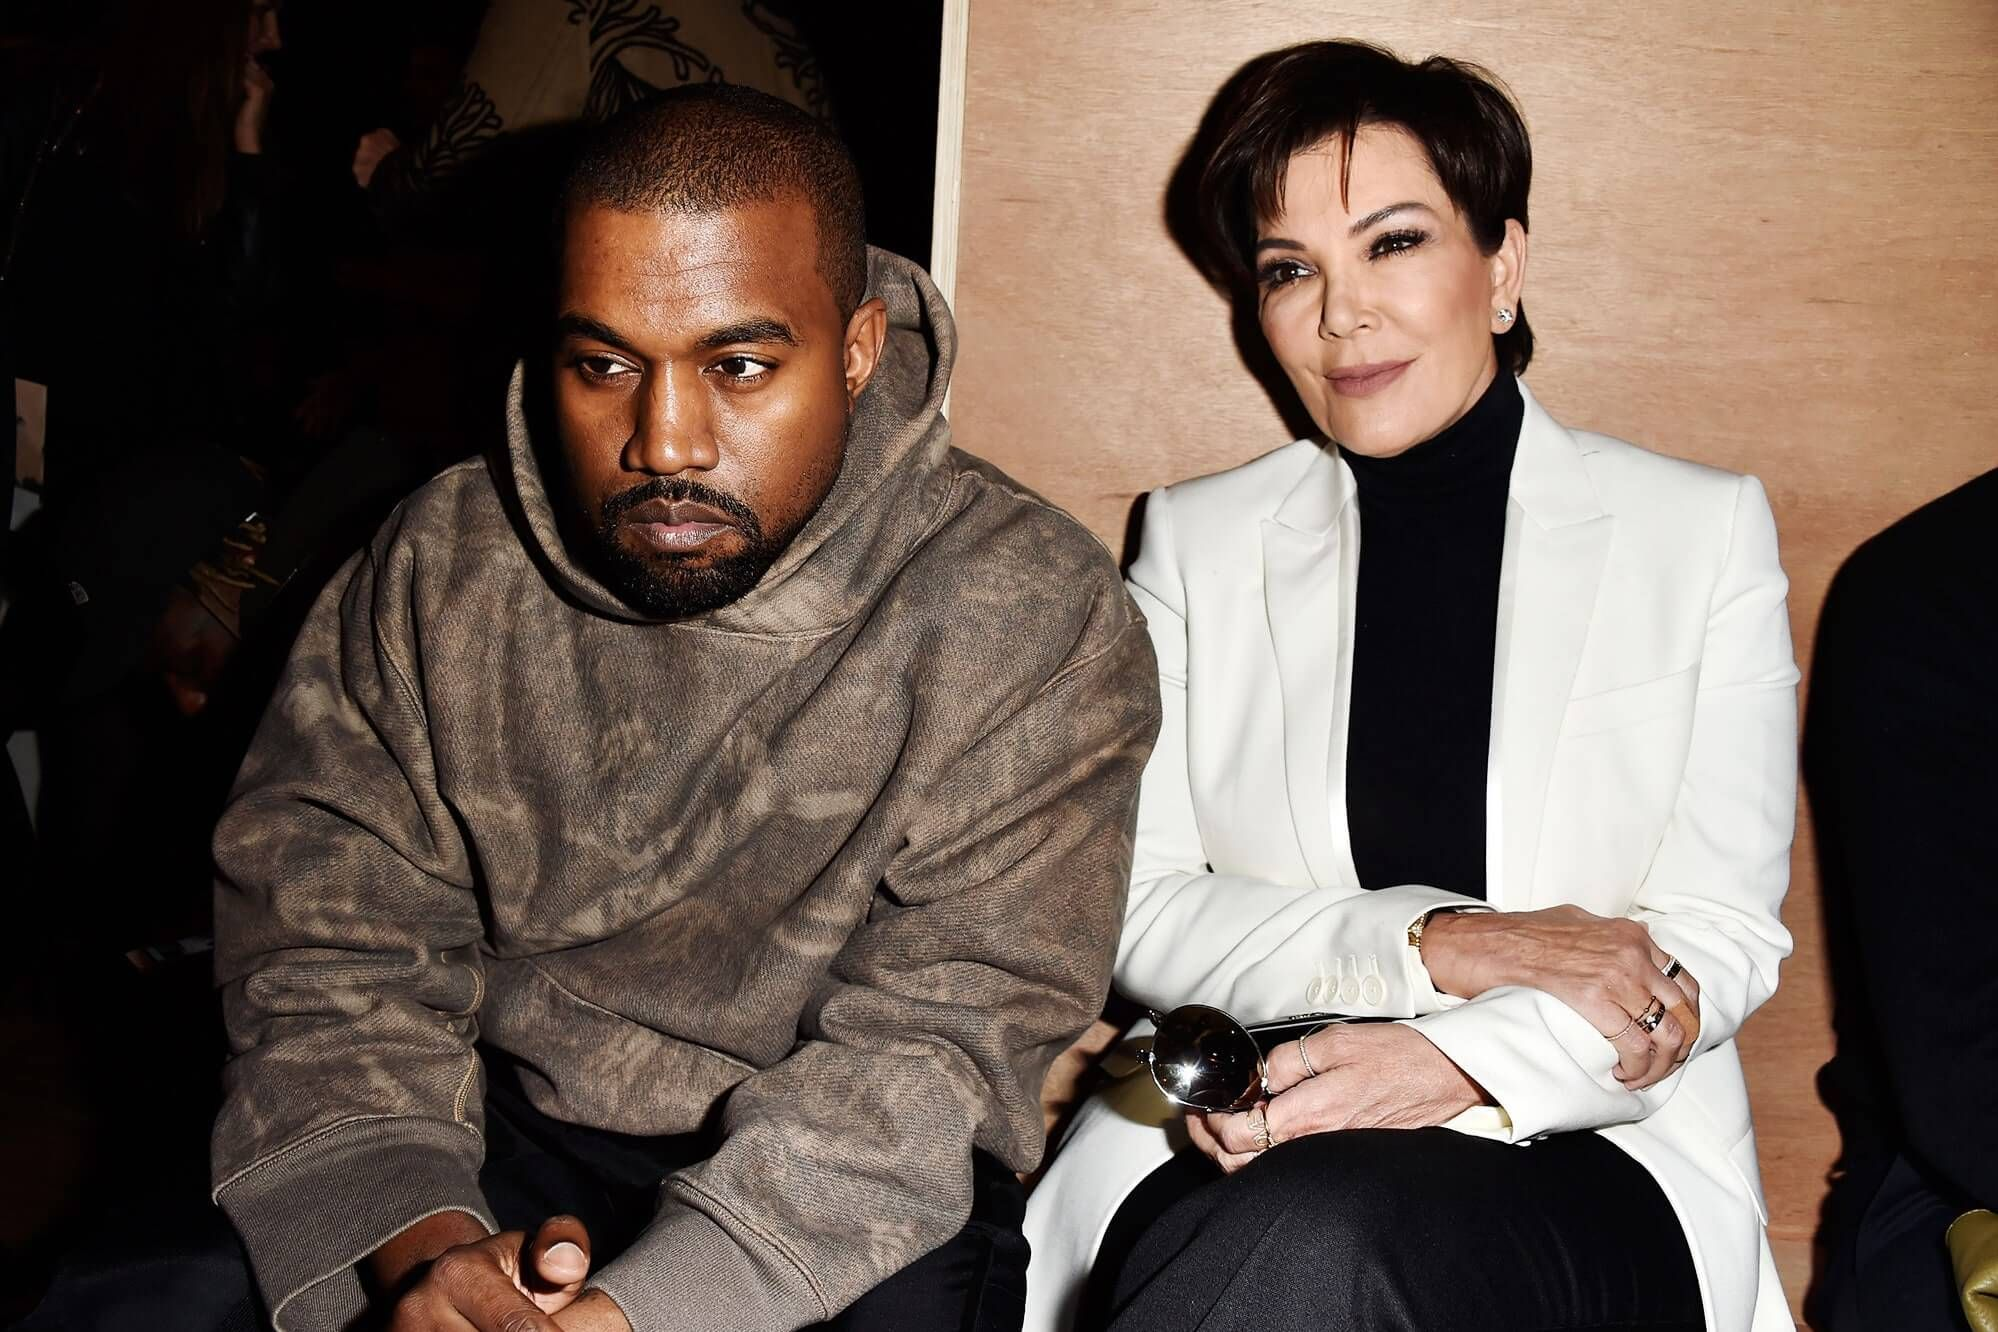 Kanye West Turns On Mother In Law Kris Jenner Bans Her From Seeing His Kids In 2020 Kris Jenner Kanye West Kim And Kanye